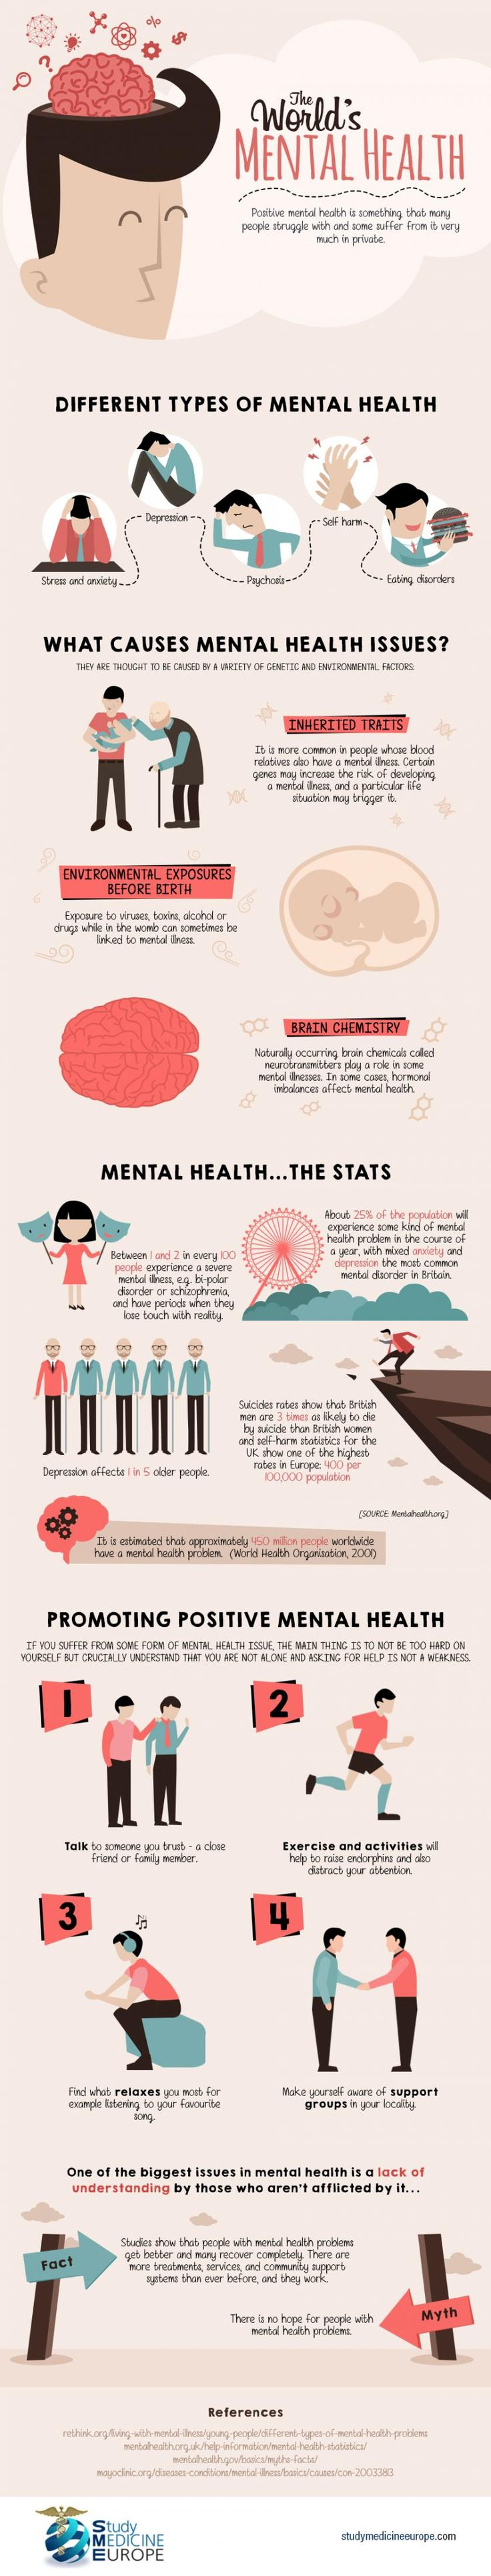 best ideas about types of mental health the world s mental health the different types of mental health issues from around the world